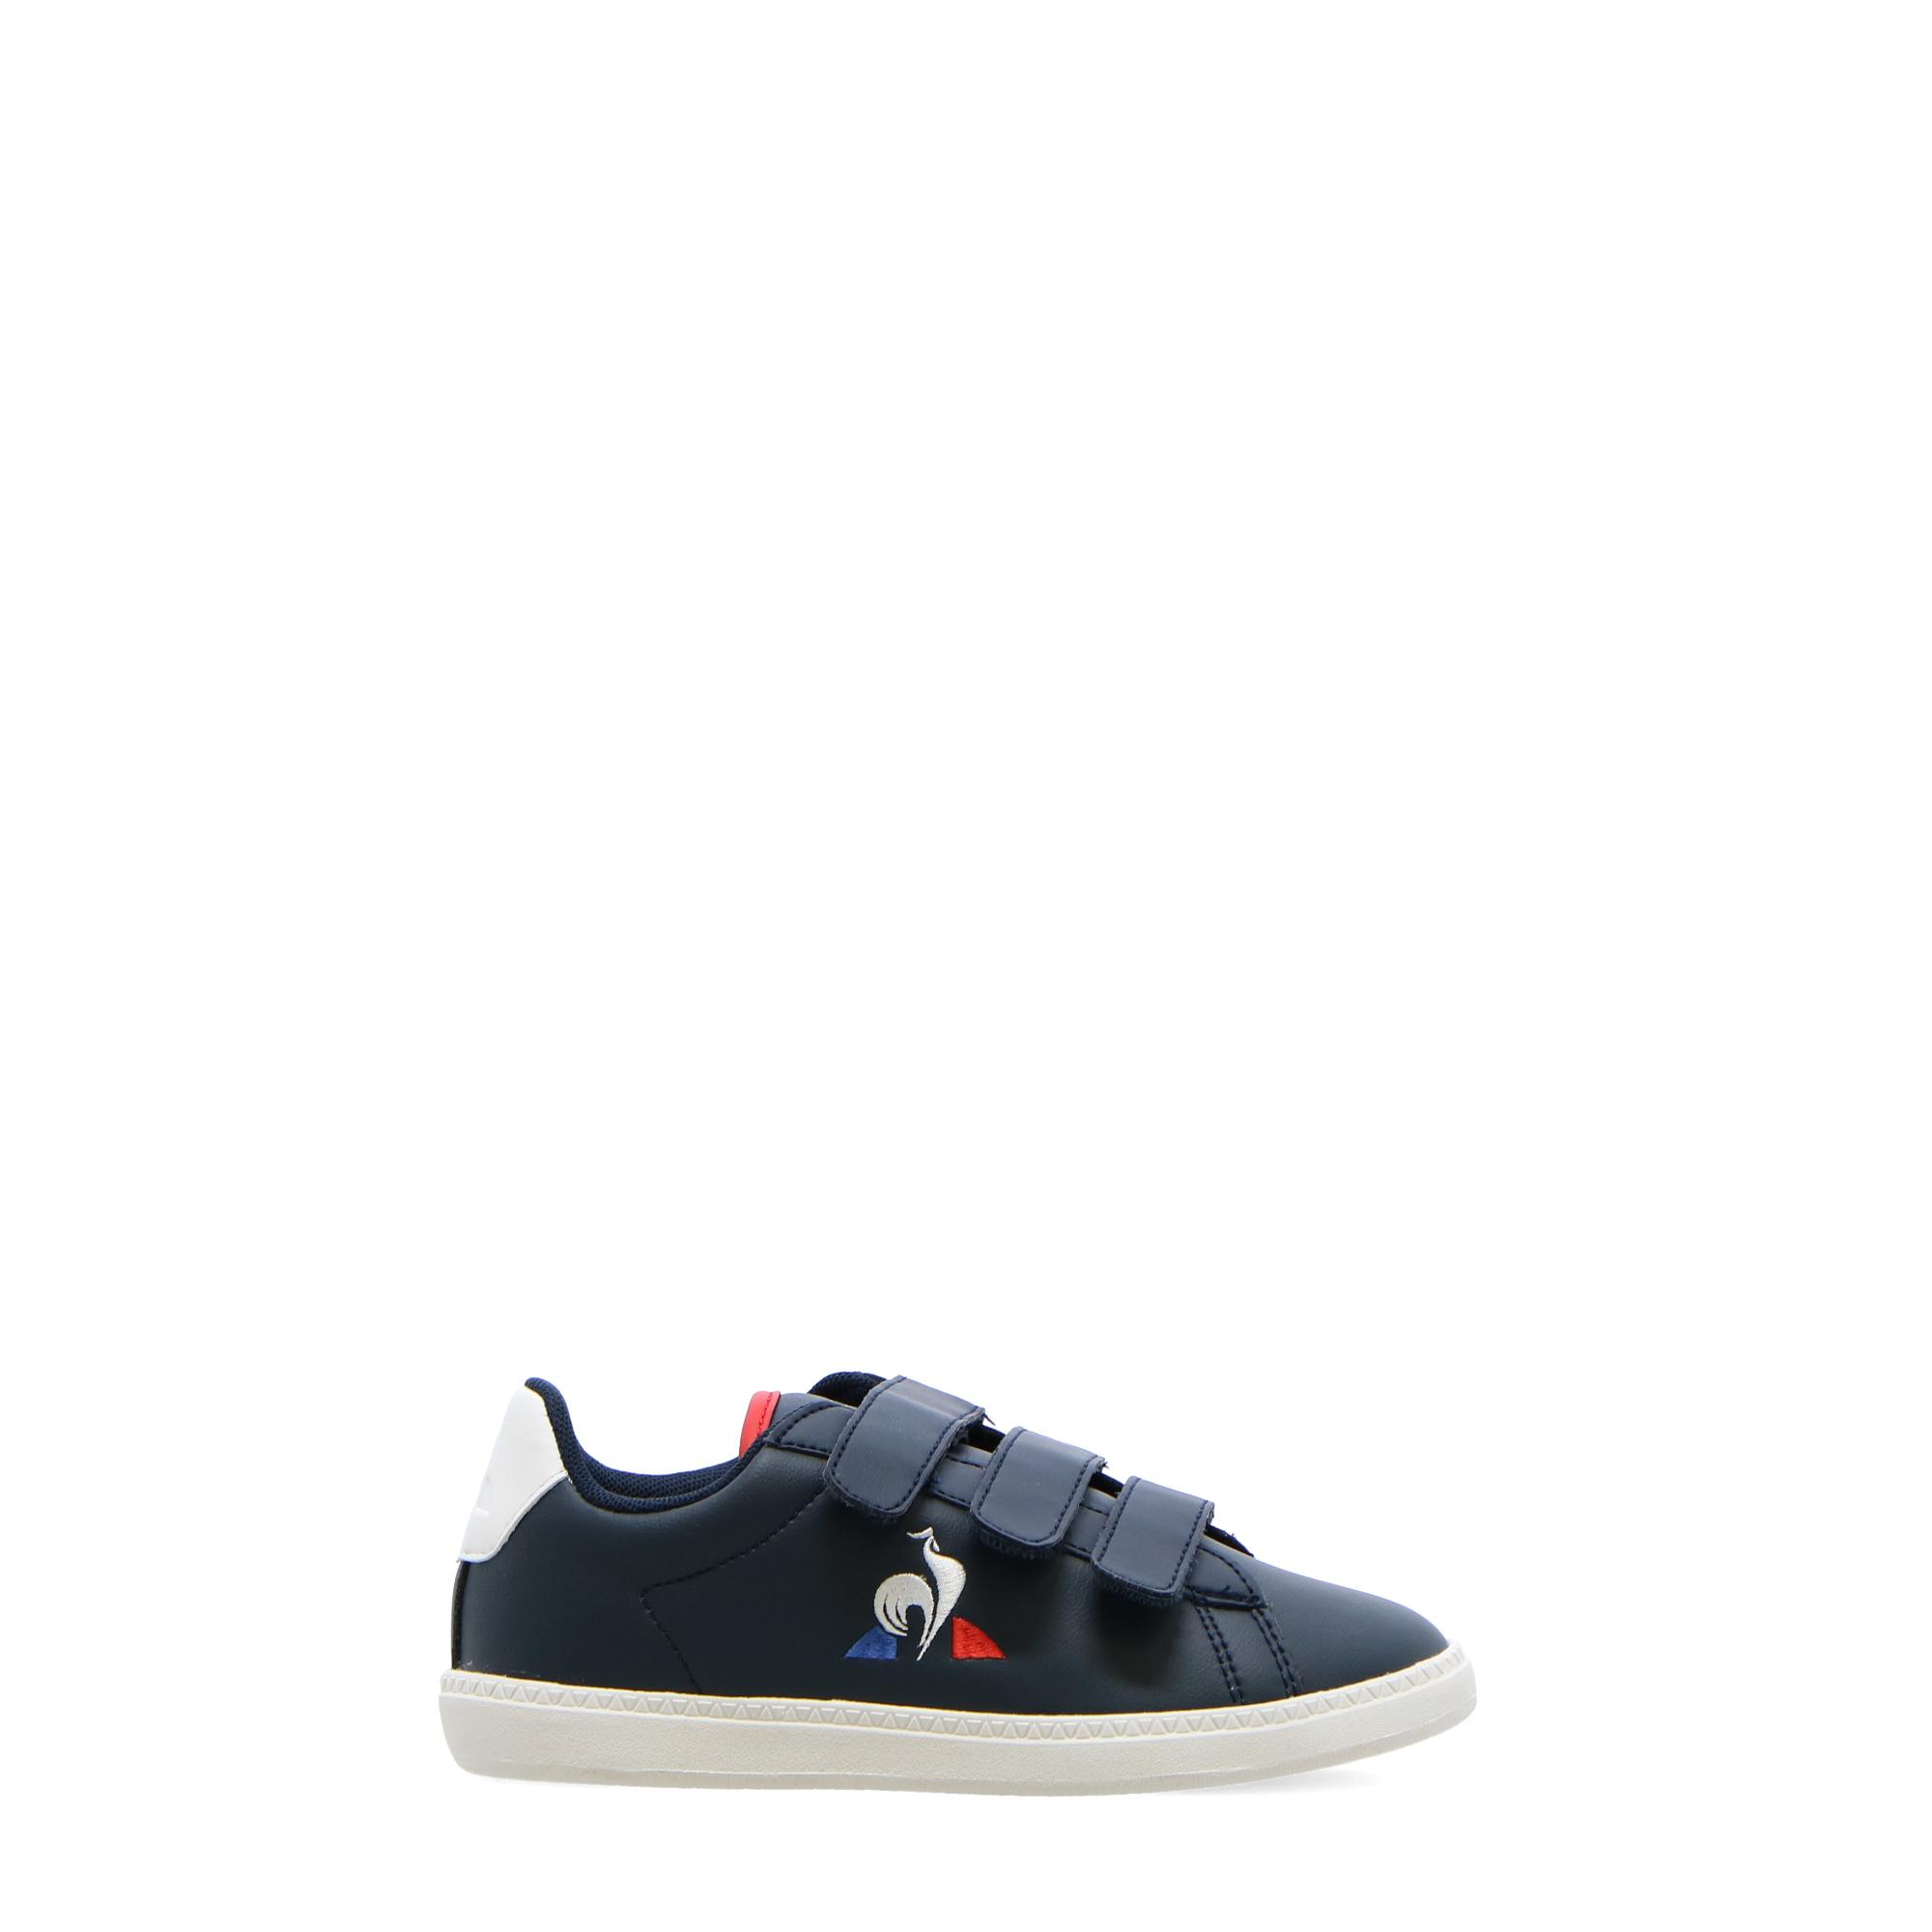 Le Coq Sportif Courtset Ps Dress blue optical white